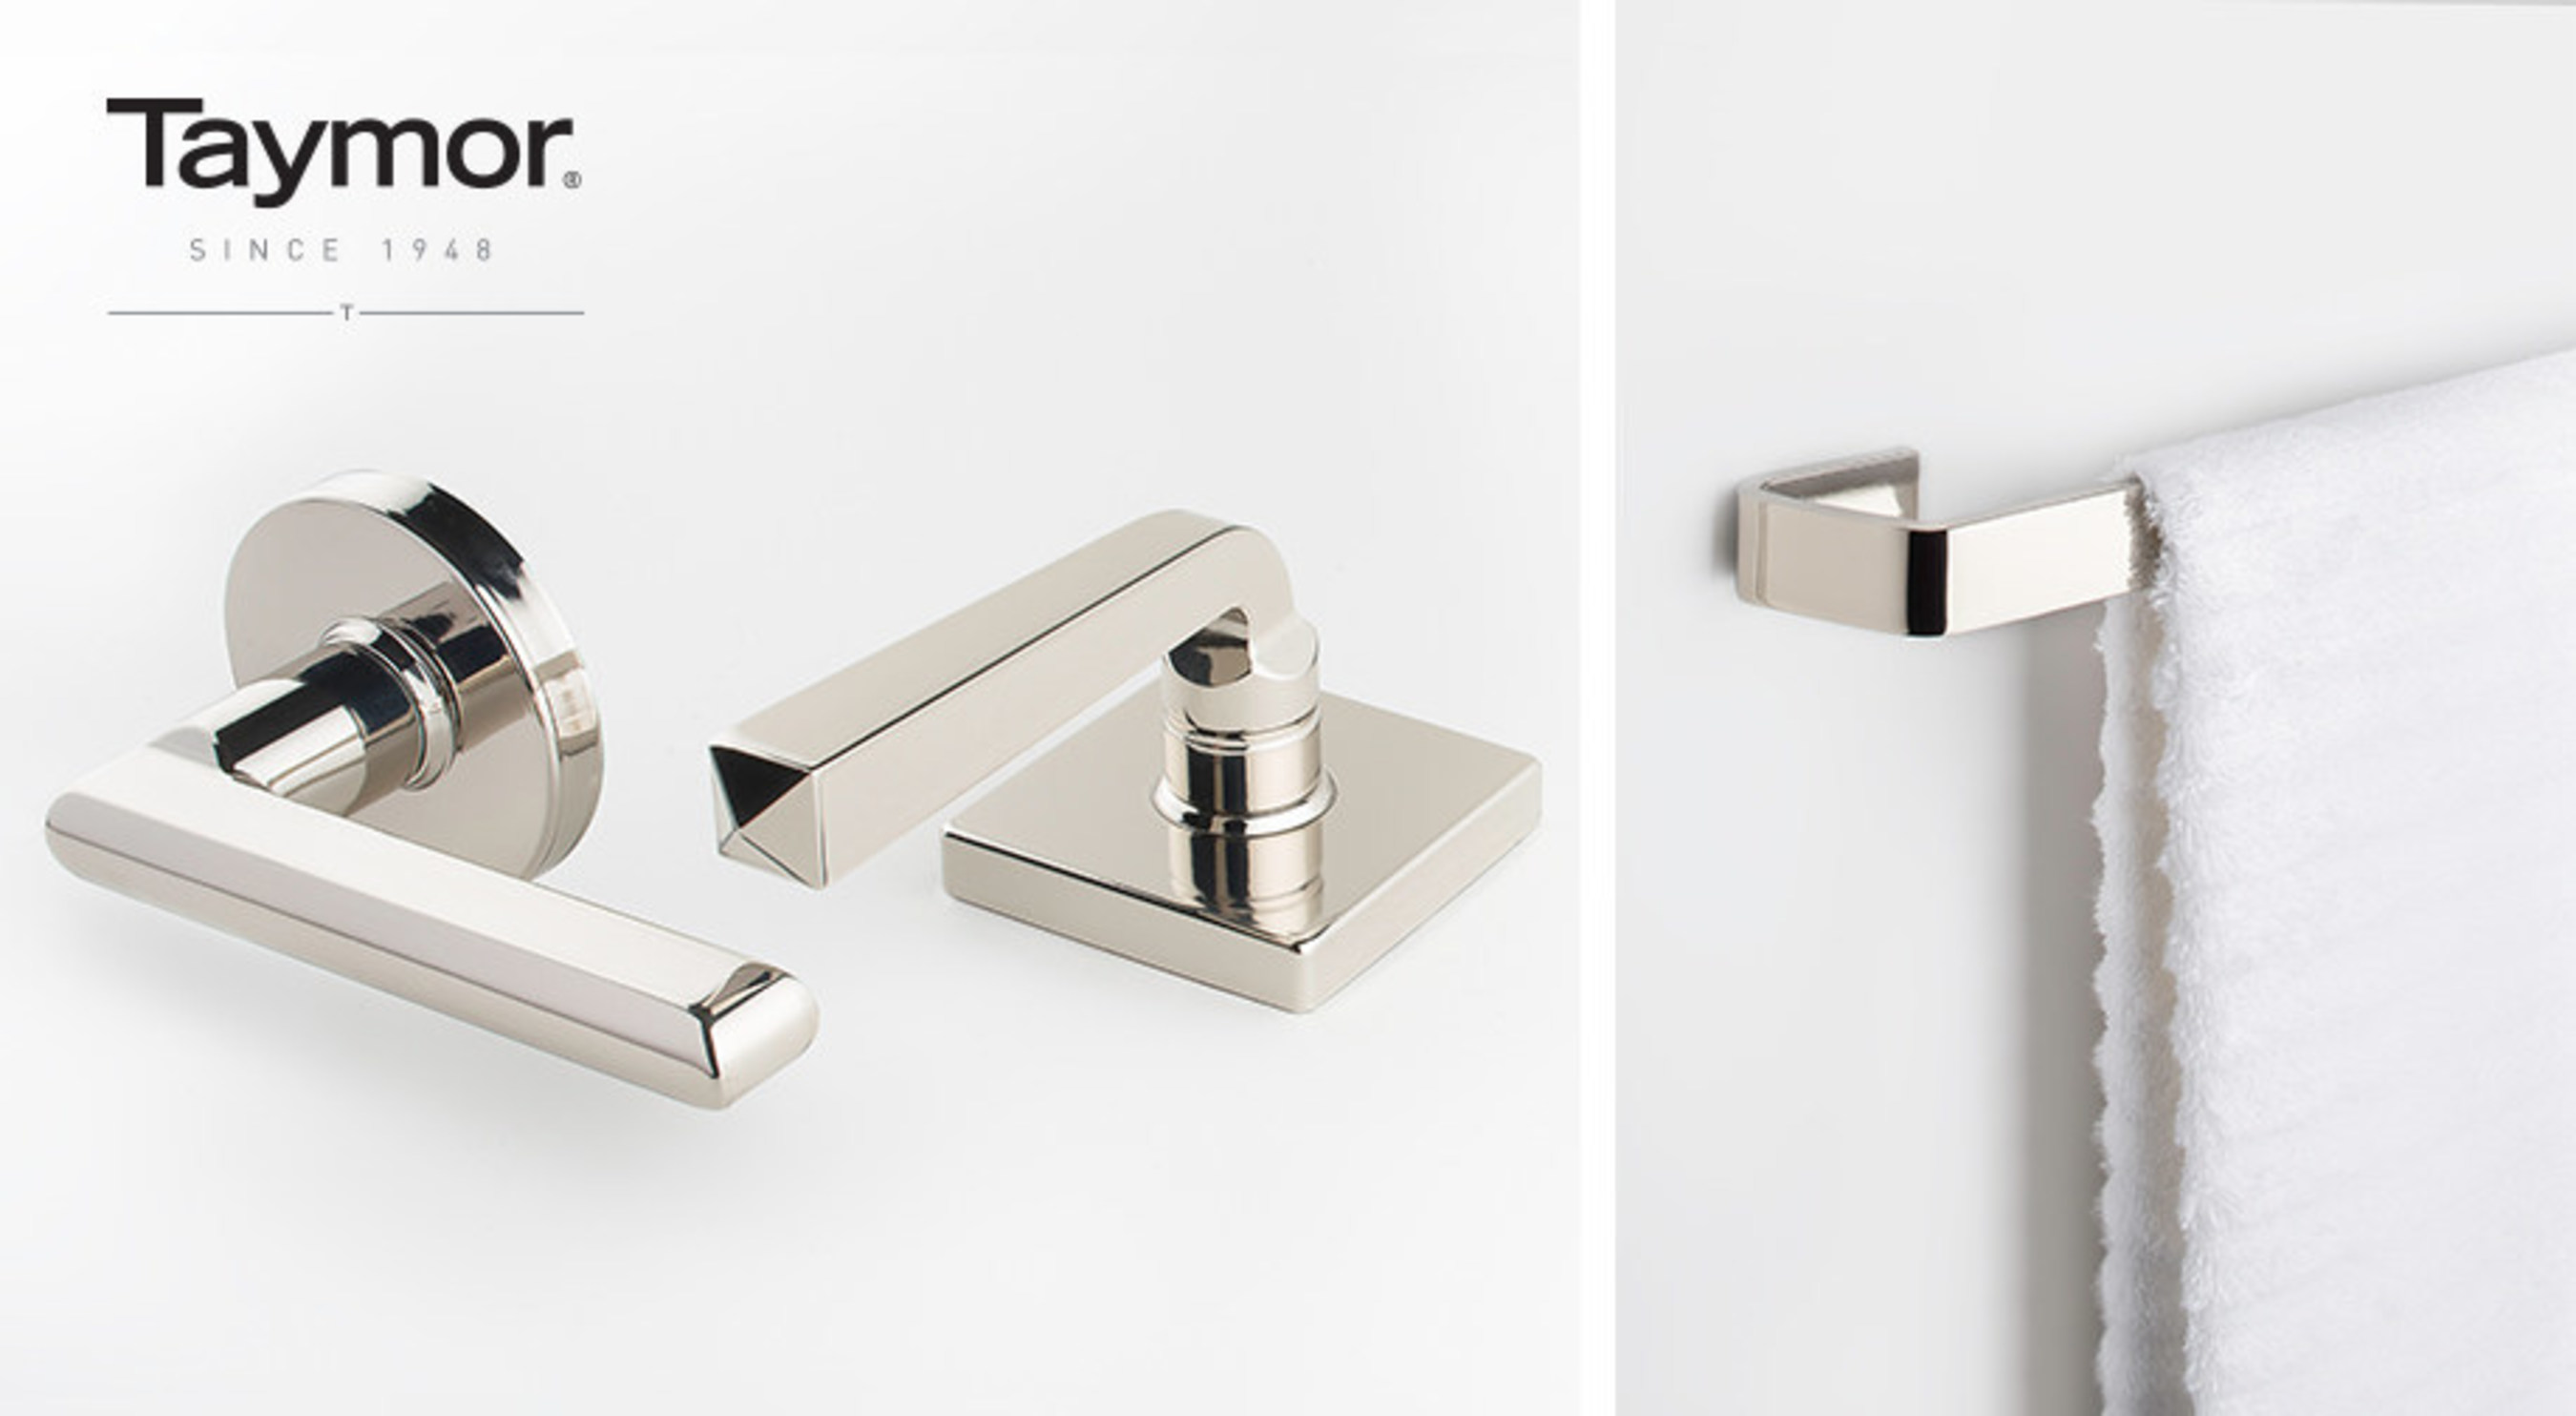 Taymor Unveils Contemporary Design-Coordinated Door and Bath Hardware at the 2016 International